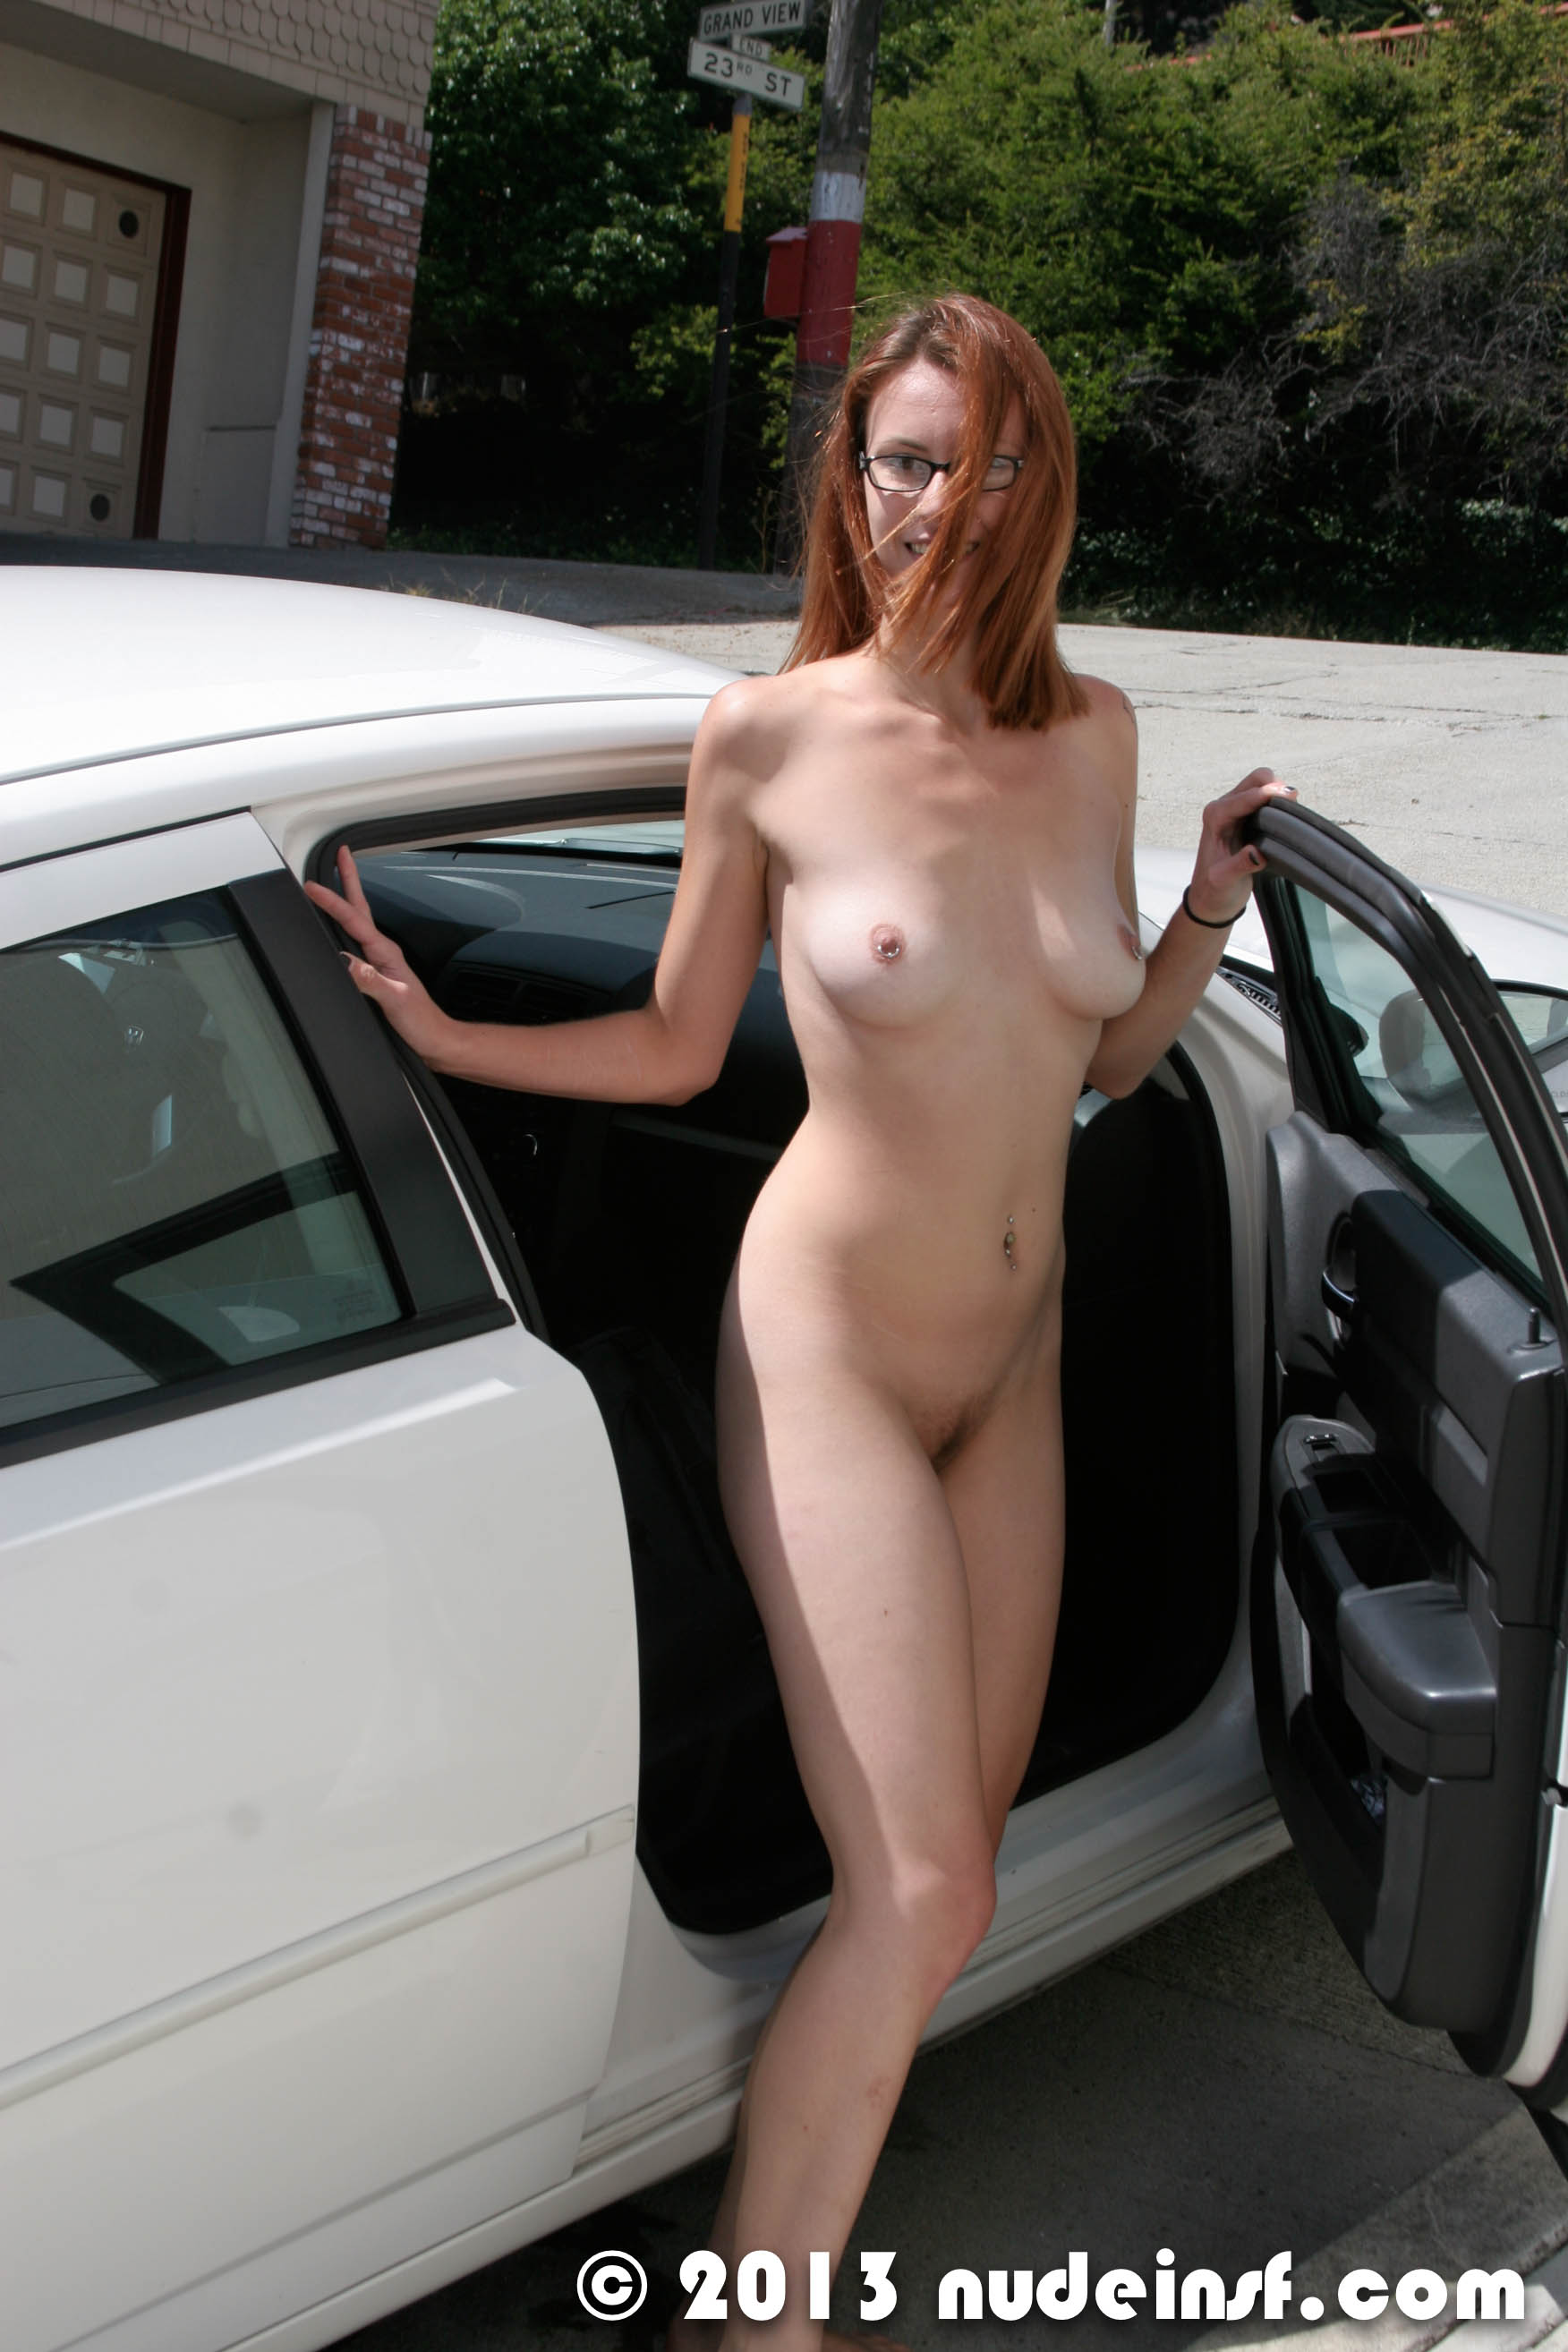 Sexy redhead gets her asshole blown out by guy she met onlin - 2 part 9